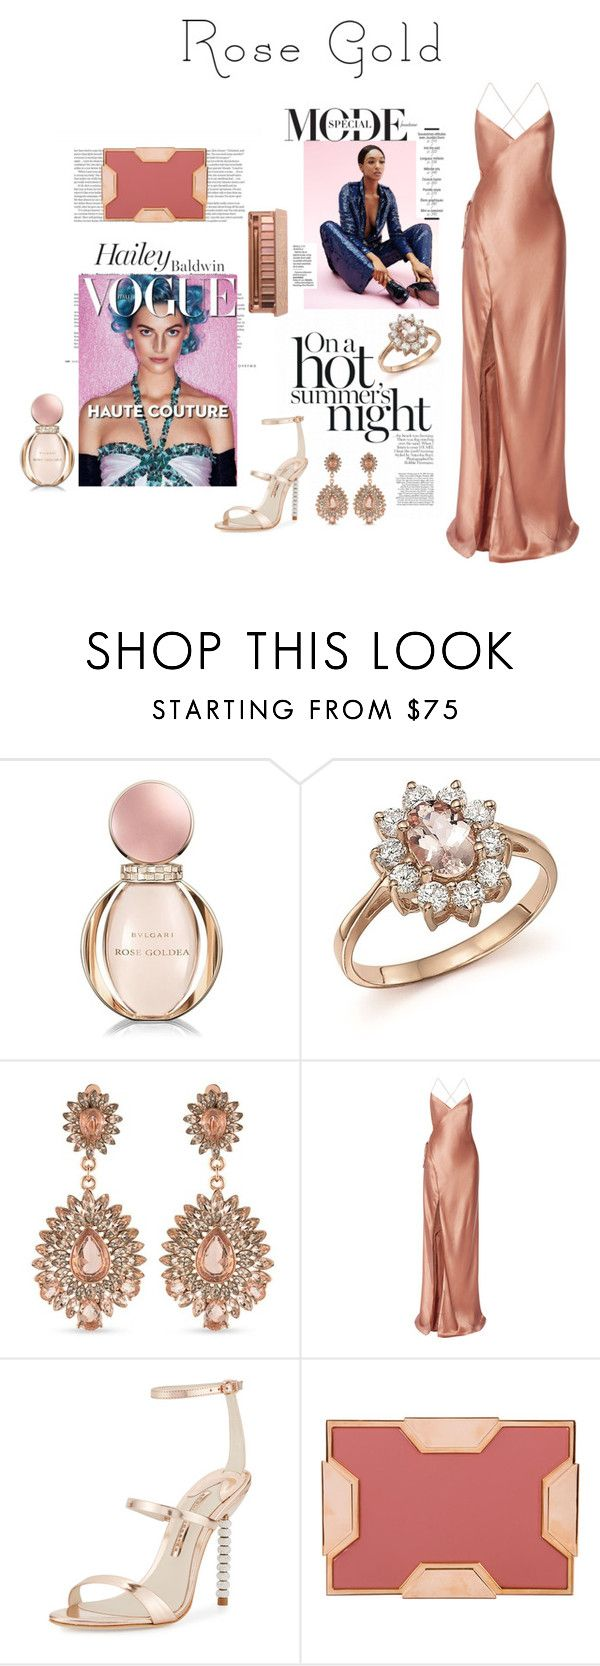 """So Pretty: Rose Gold Jewelry"" by meltc ❤ liked on Polyvore featuring Bulgari, Bloomingdale's, Carolee, Mason by Michelle Mason, Sophia Webster, Dunn, Lee Savage and Urban Decay"